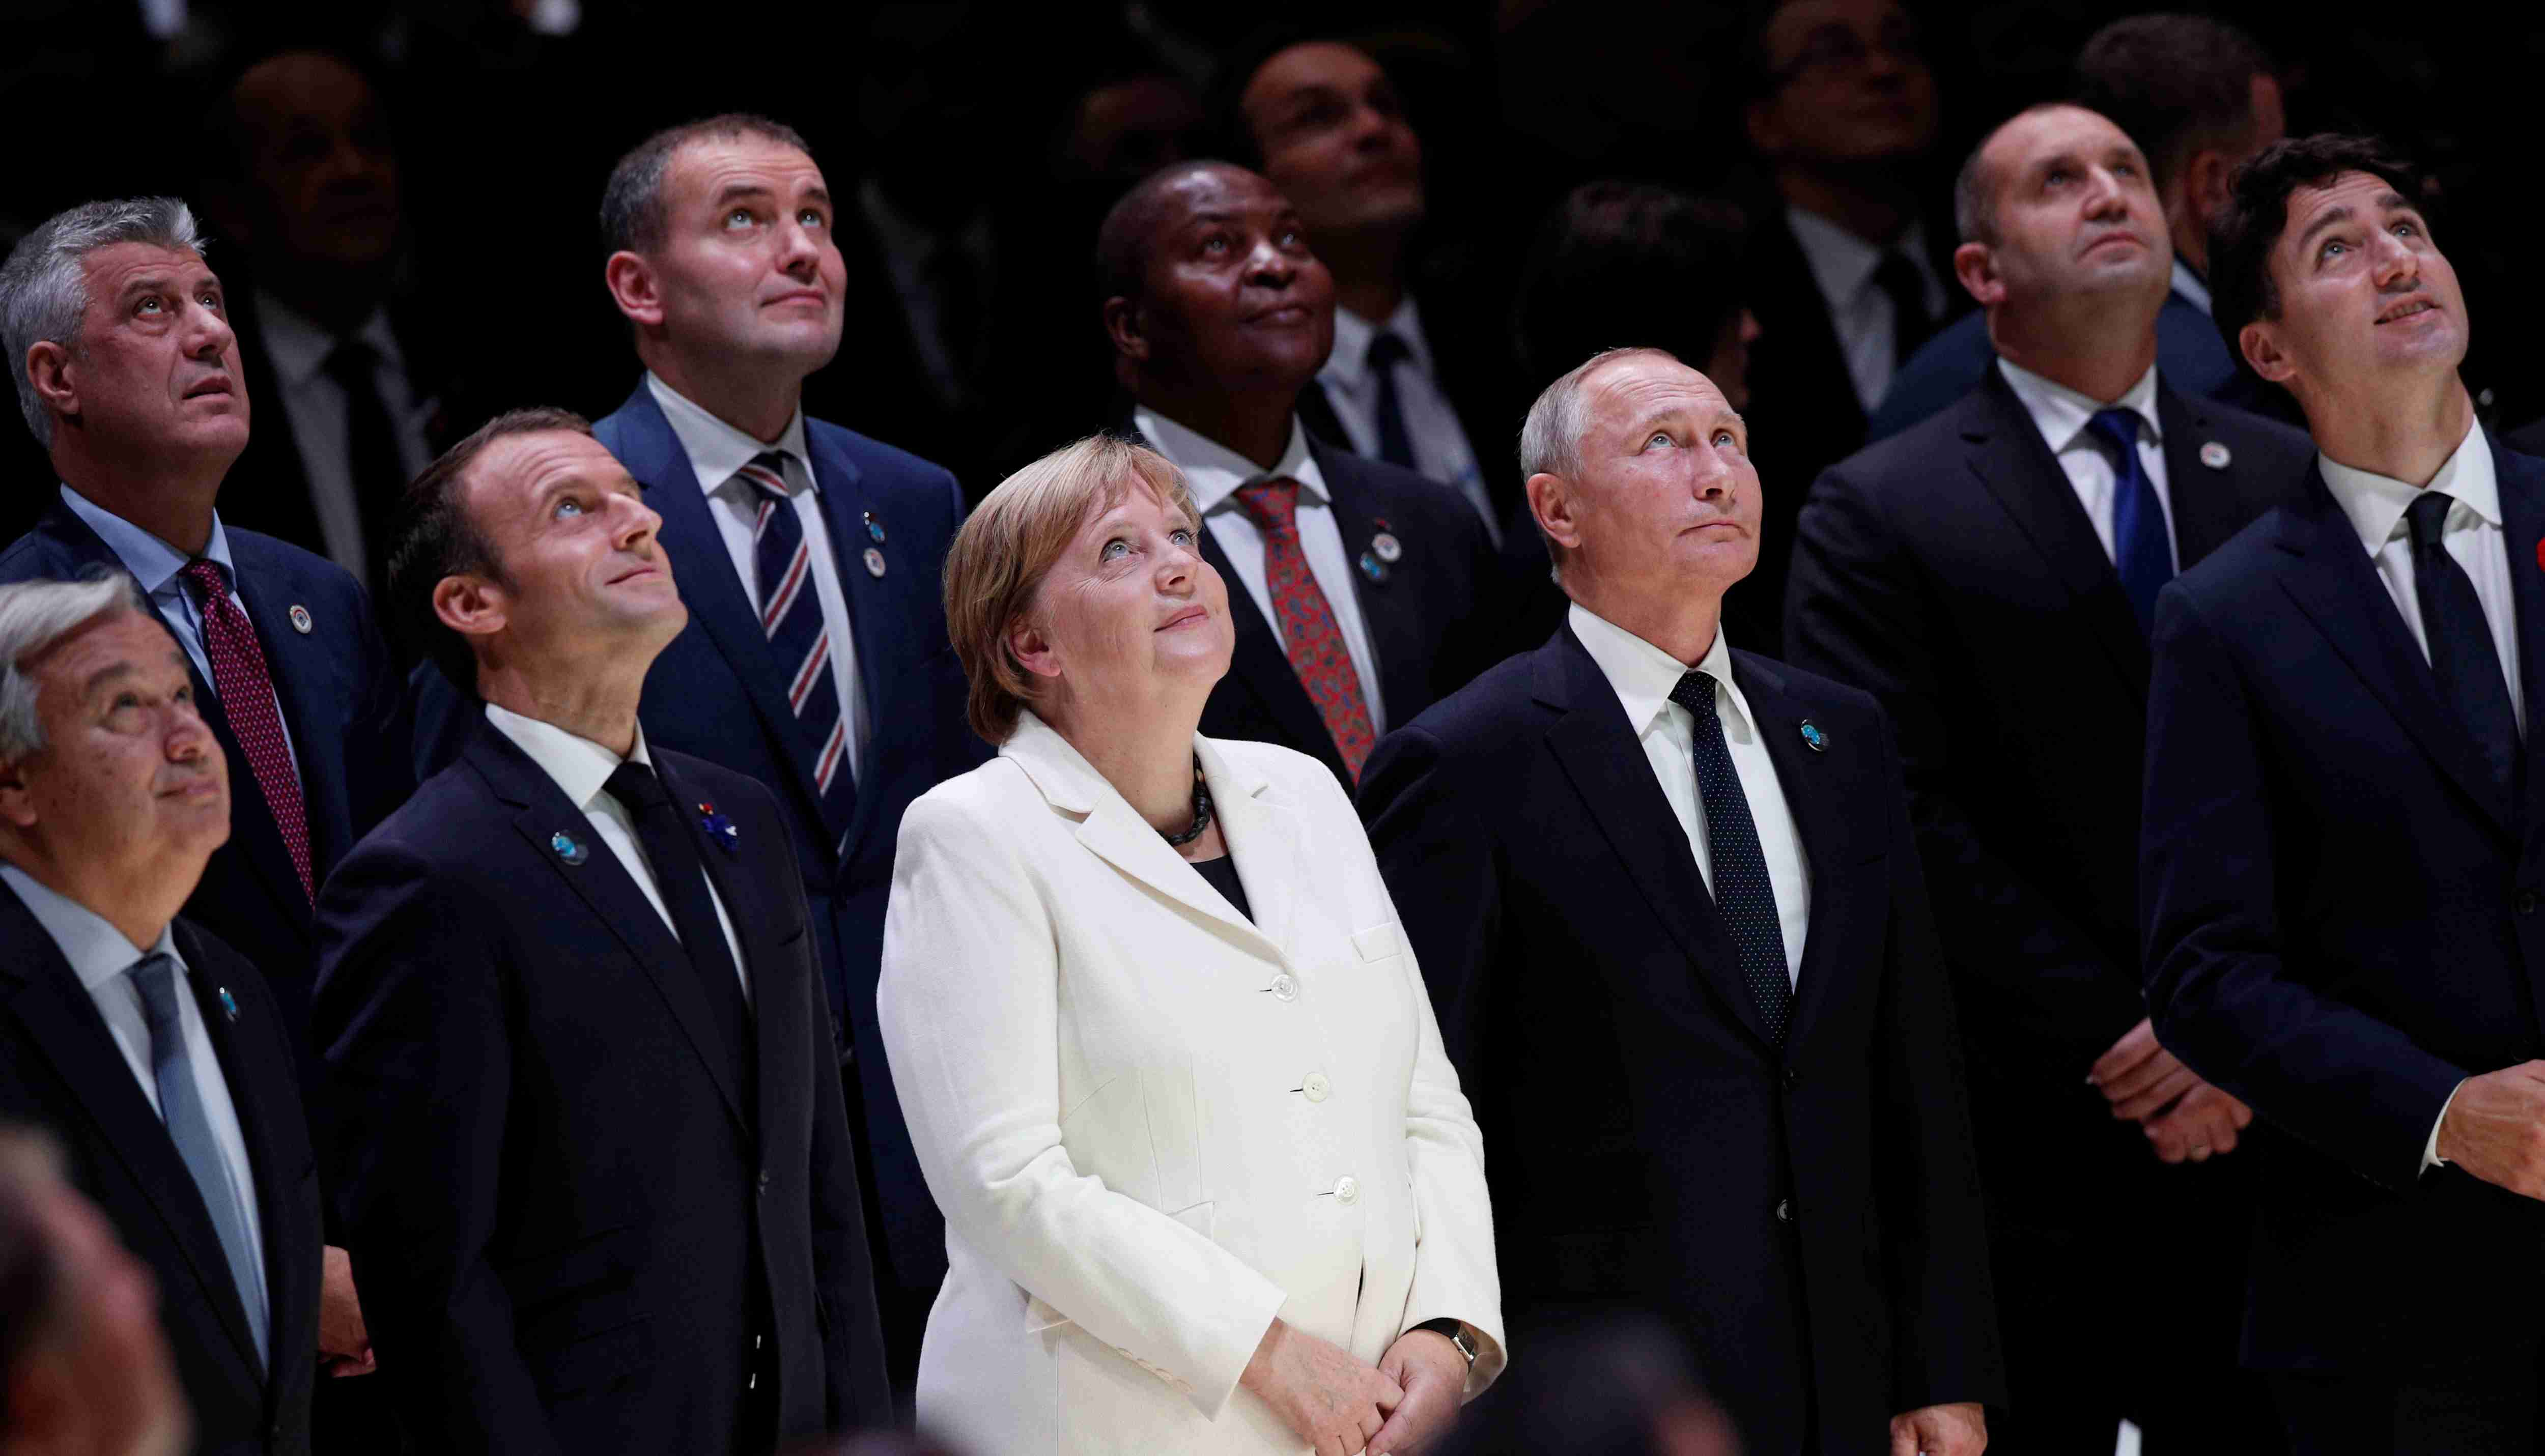 UN Secretary-General Antonio Guterres, French President Emmanuel Macron, German Chancellor Angela Merkel, Russian President Vladimir Putin, and Canadian Prime Minister Justin Trudeau at the Paris Peace Forum